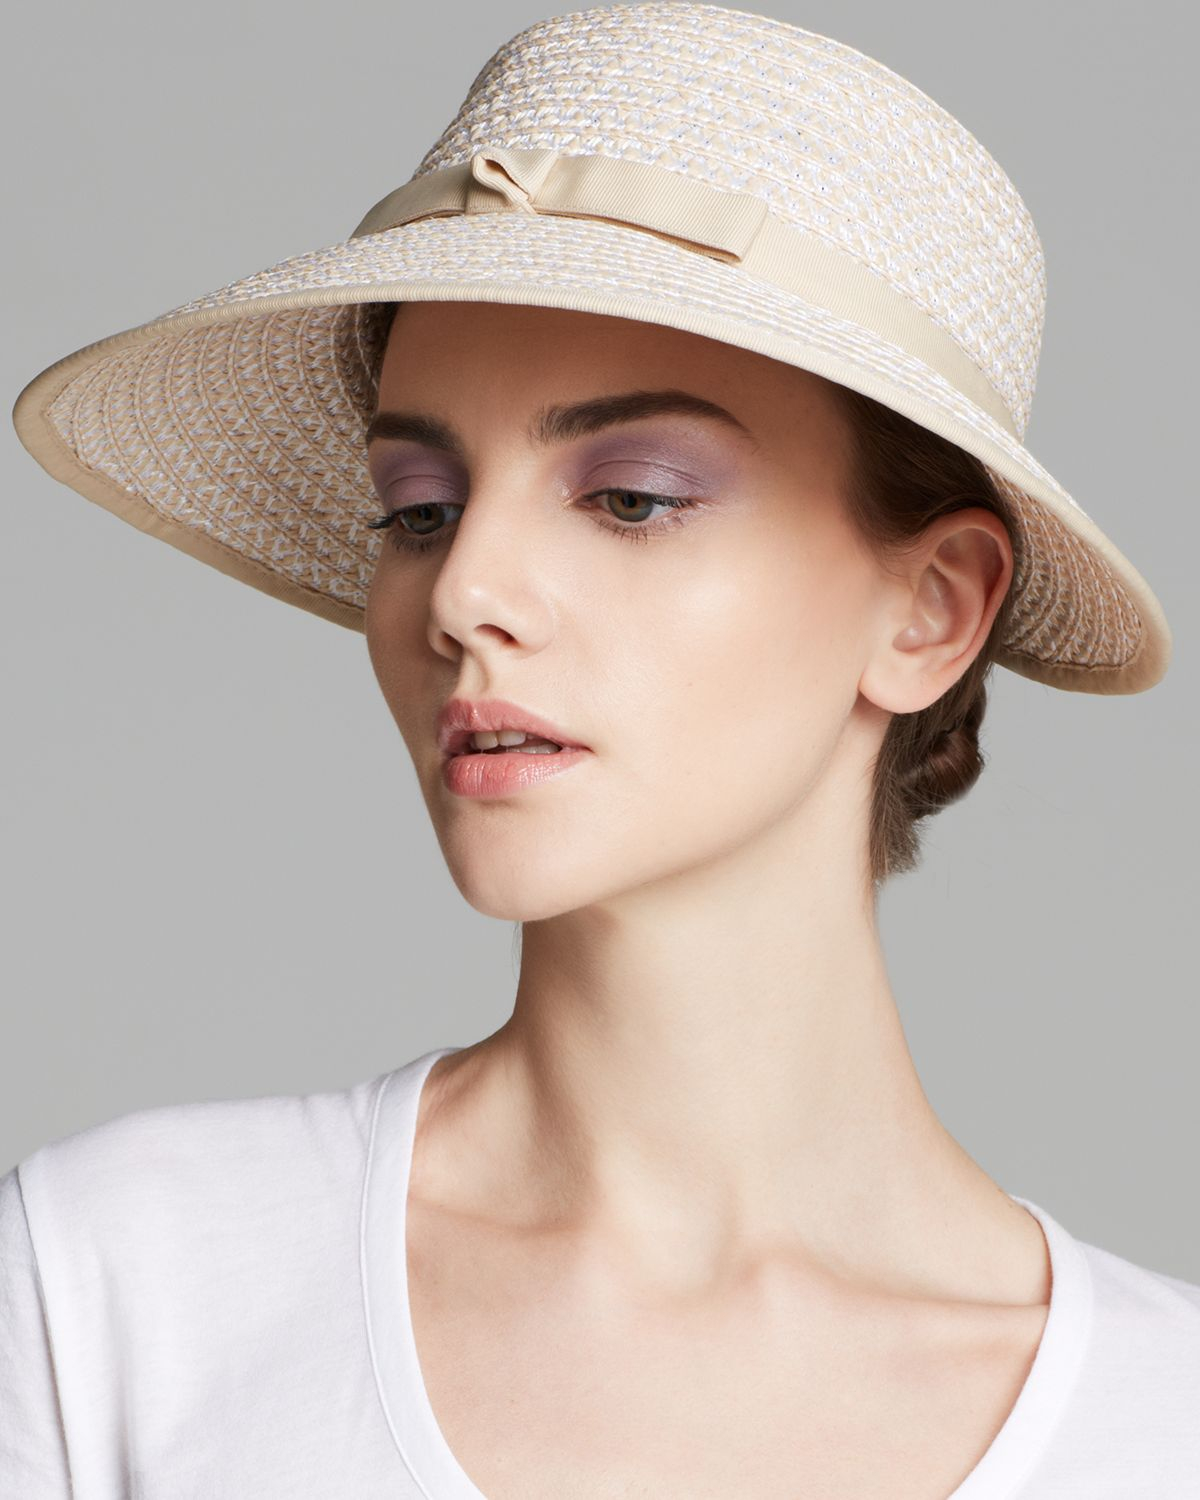 Lyst - Eric Javits Squishee Raffia Ribbon Cap in Natural 86fb33be2d5